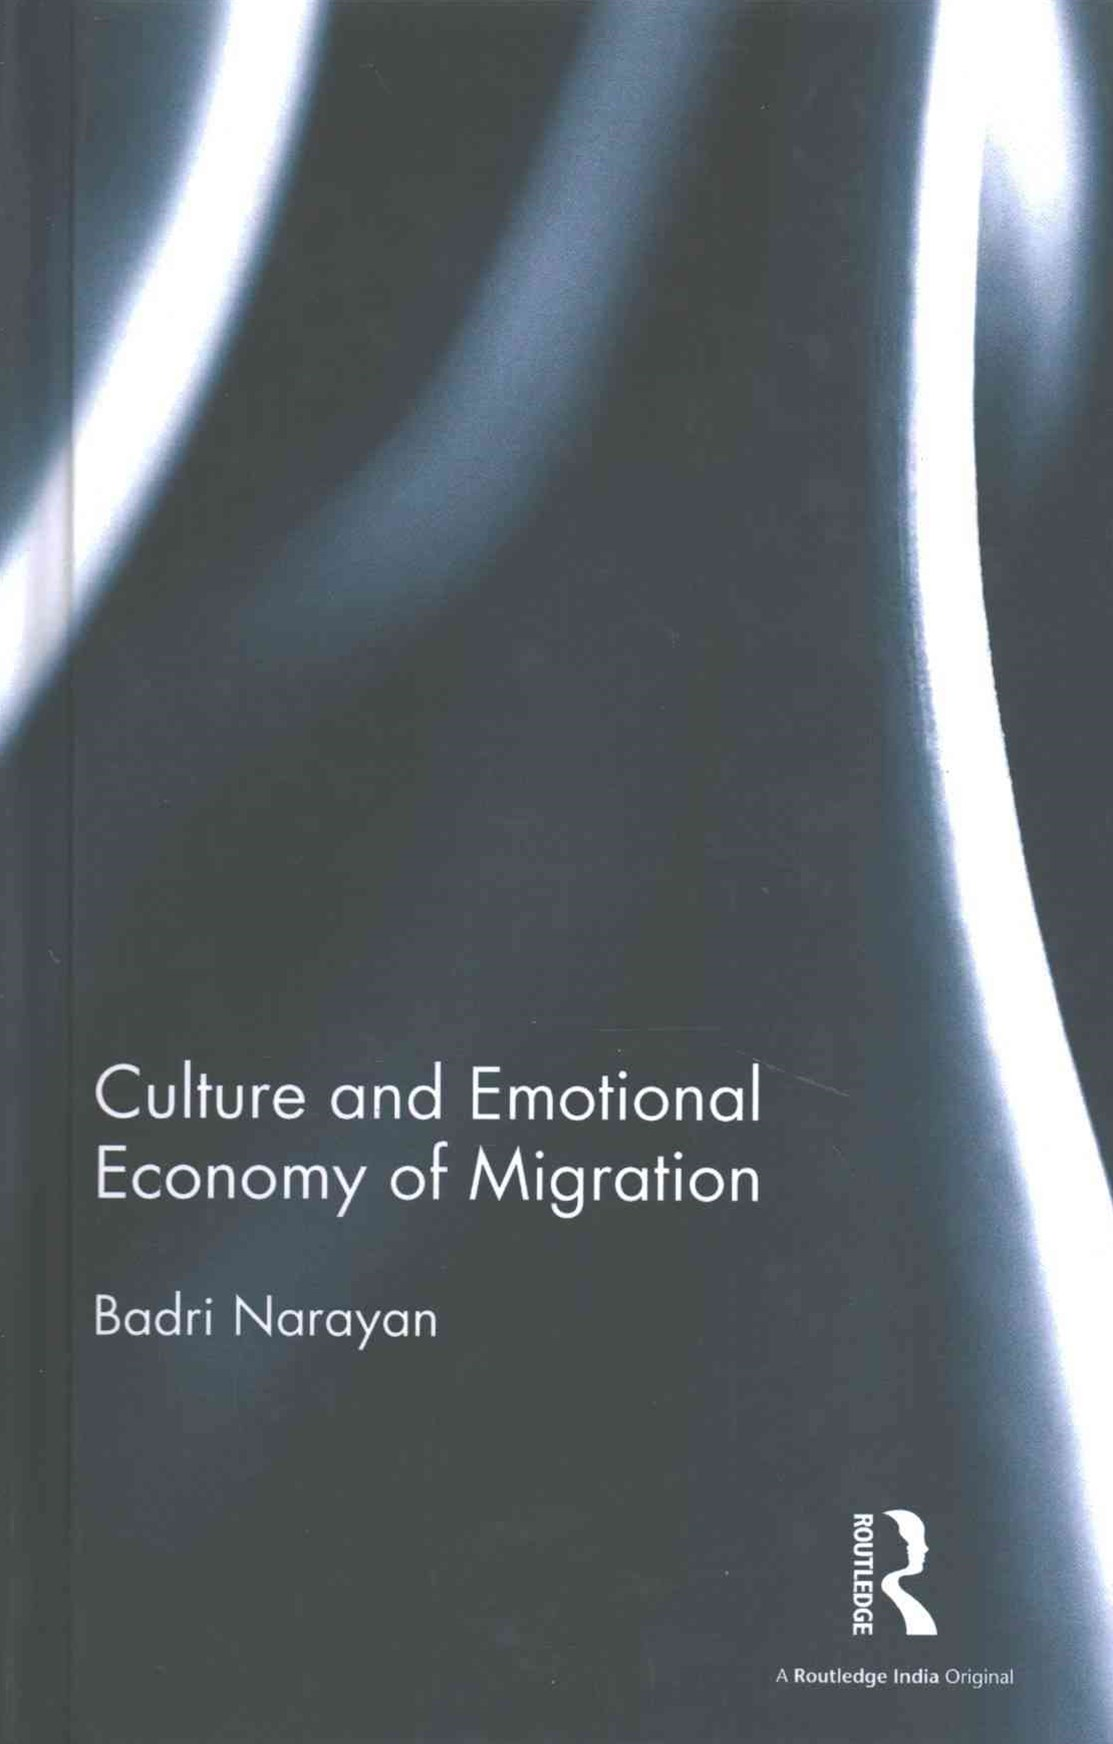 Culture and Emotional Economy of Migration